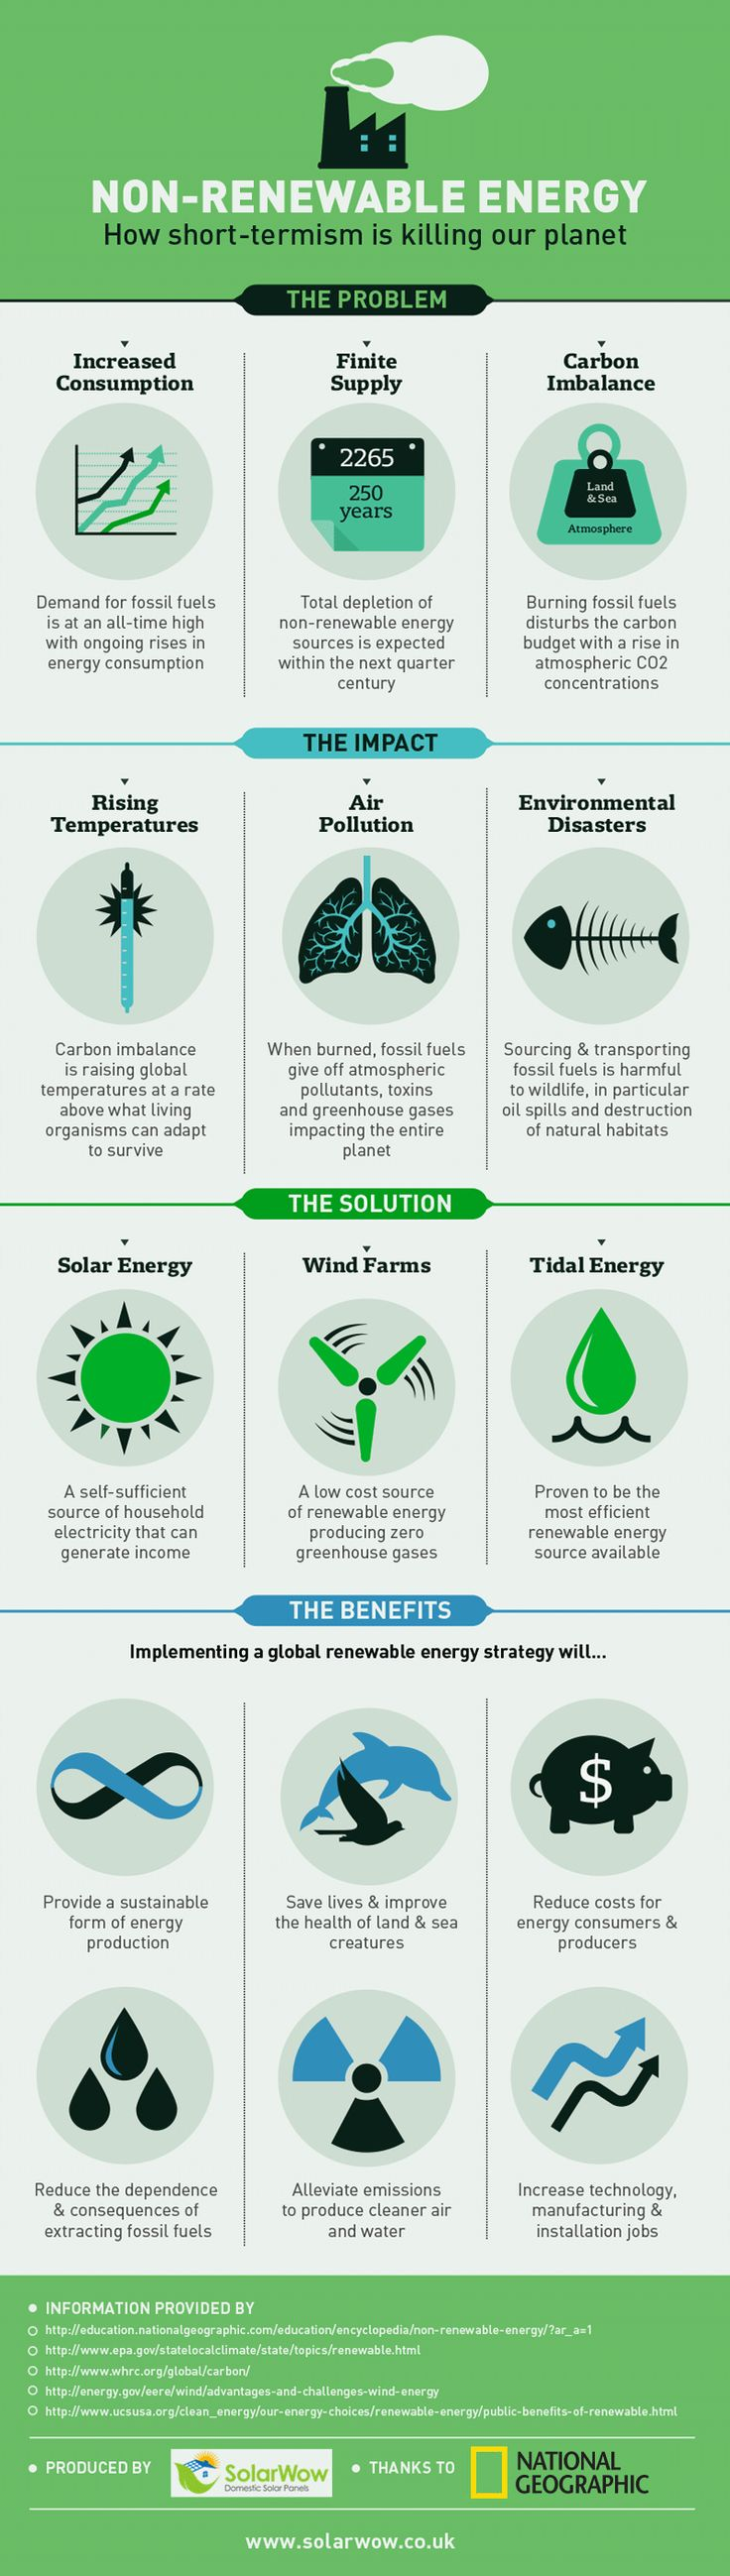 #Non-Renewable #Energy – How Short-Termism is Killing Our #Planet - Do you fancy an infographic?  There are a lot of them online, but if you want your own please visit http://www.linfografico.com/prezzi/  Online girano molte infografiche, se ne vuoi realizzare una tutta tua visita http://www.linfografico.com/prezzi/